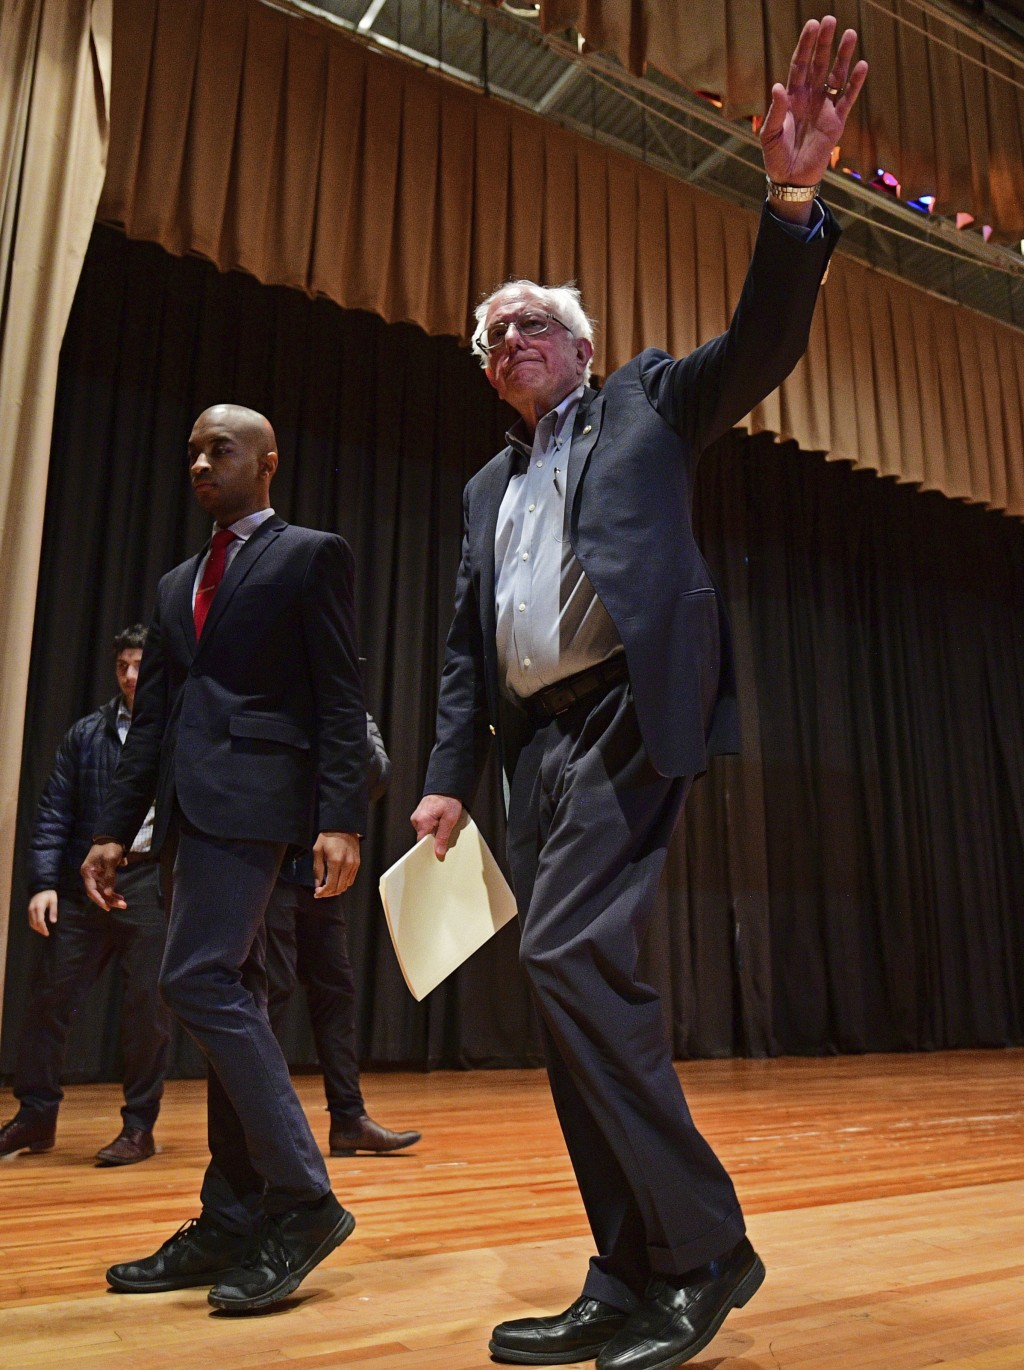 Sen. Bernie Sanders, I-Vt., exits the stage after speaking at an Ohio workers town hall meeting, Sunday, April 14, 2019, in Warren, Ohio. (AP Photo/Da